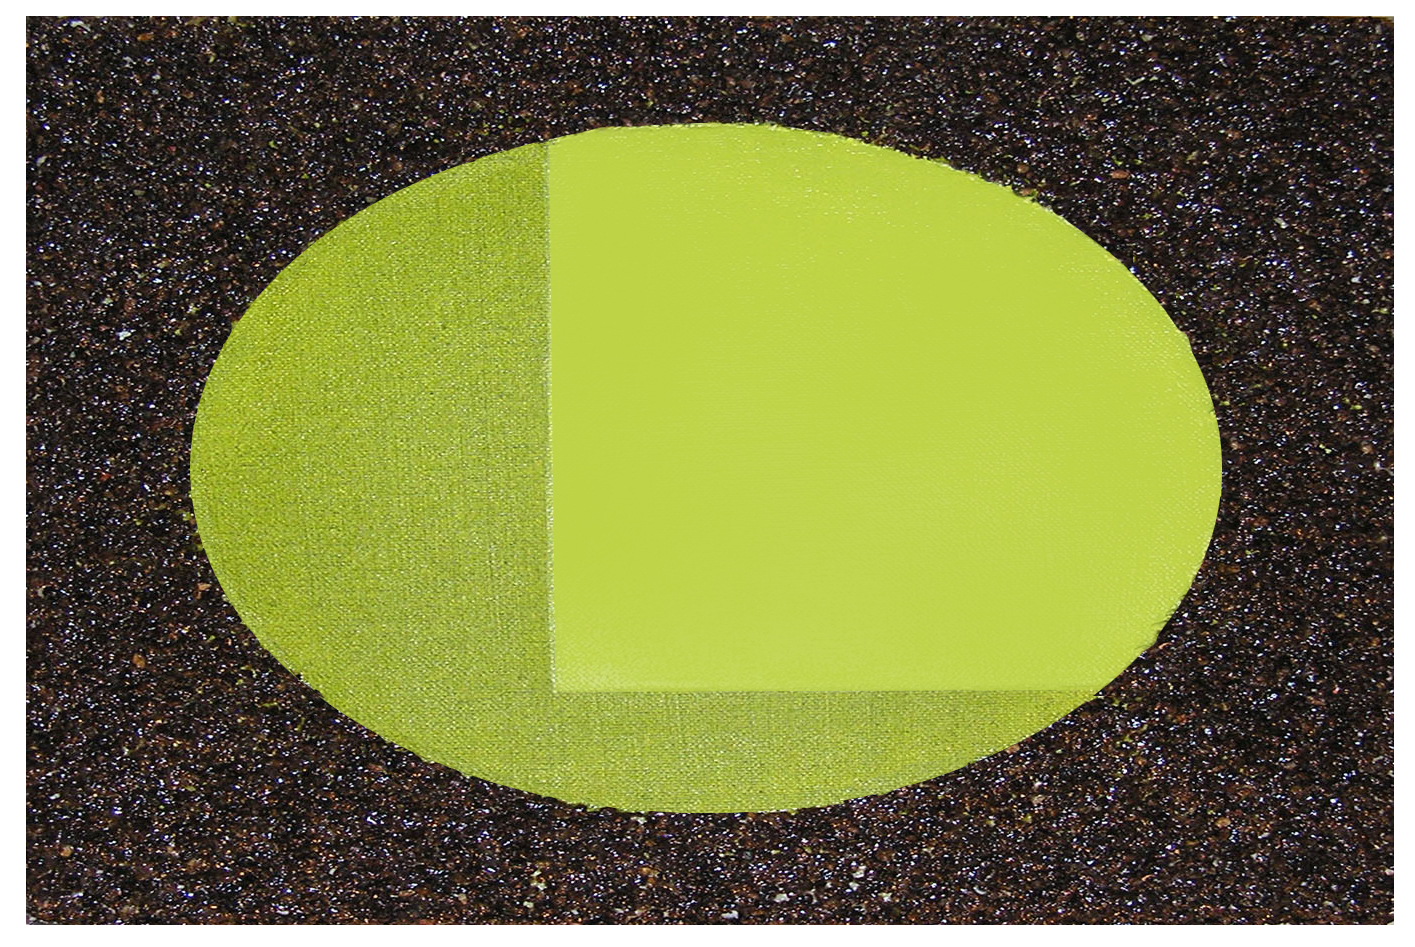 C G THE-GREEN-OVAL 72 24_ X 36_X 3_ 2.2011